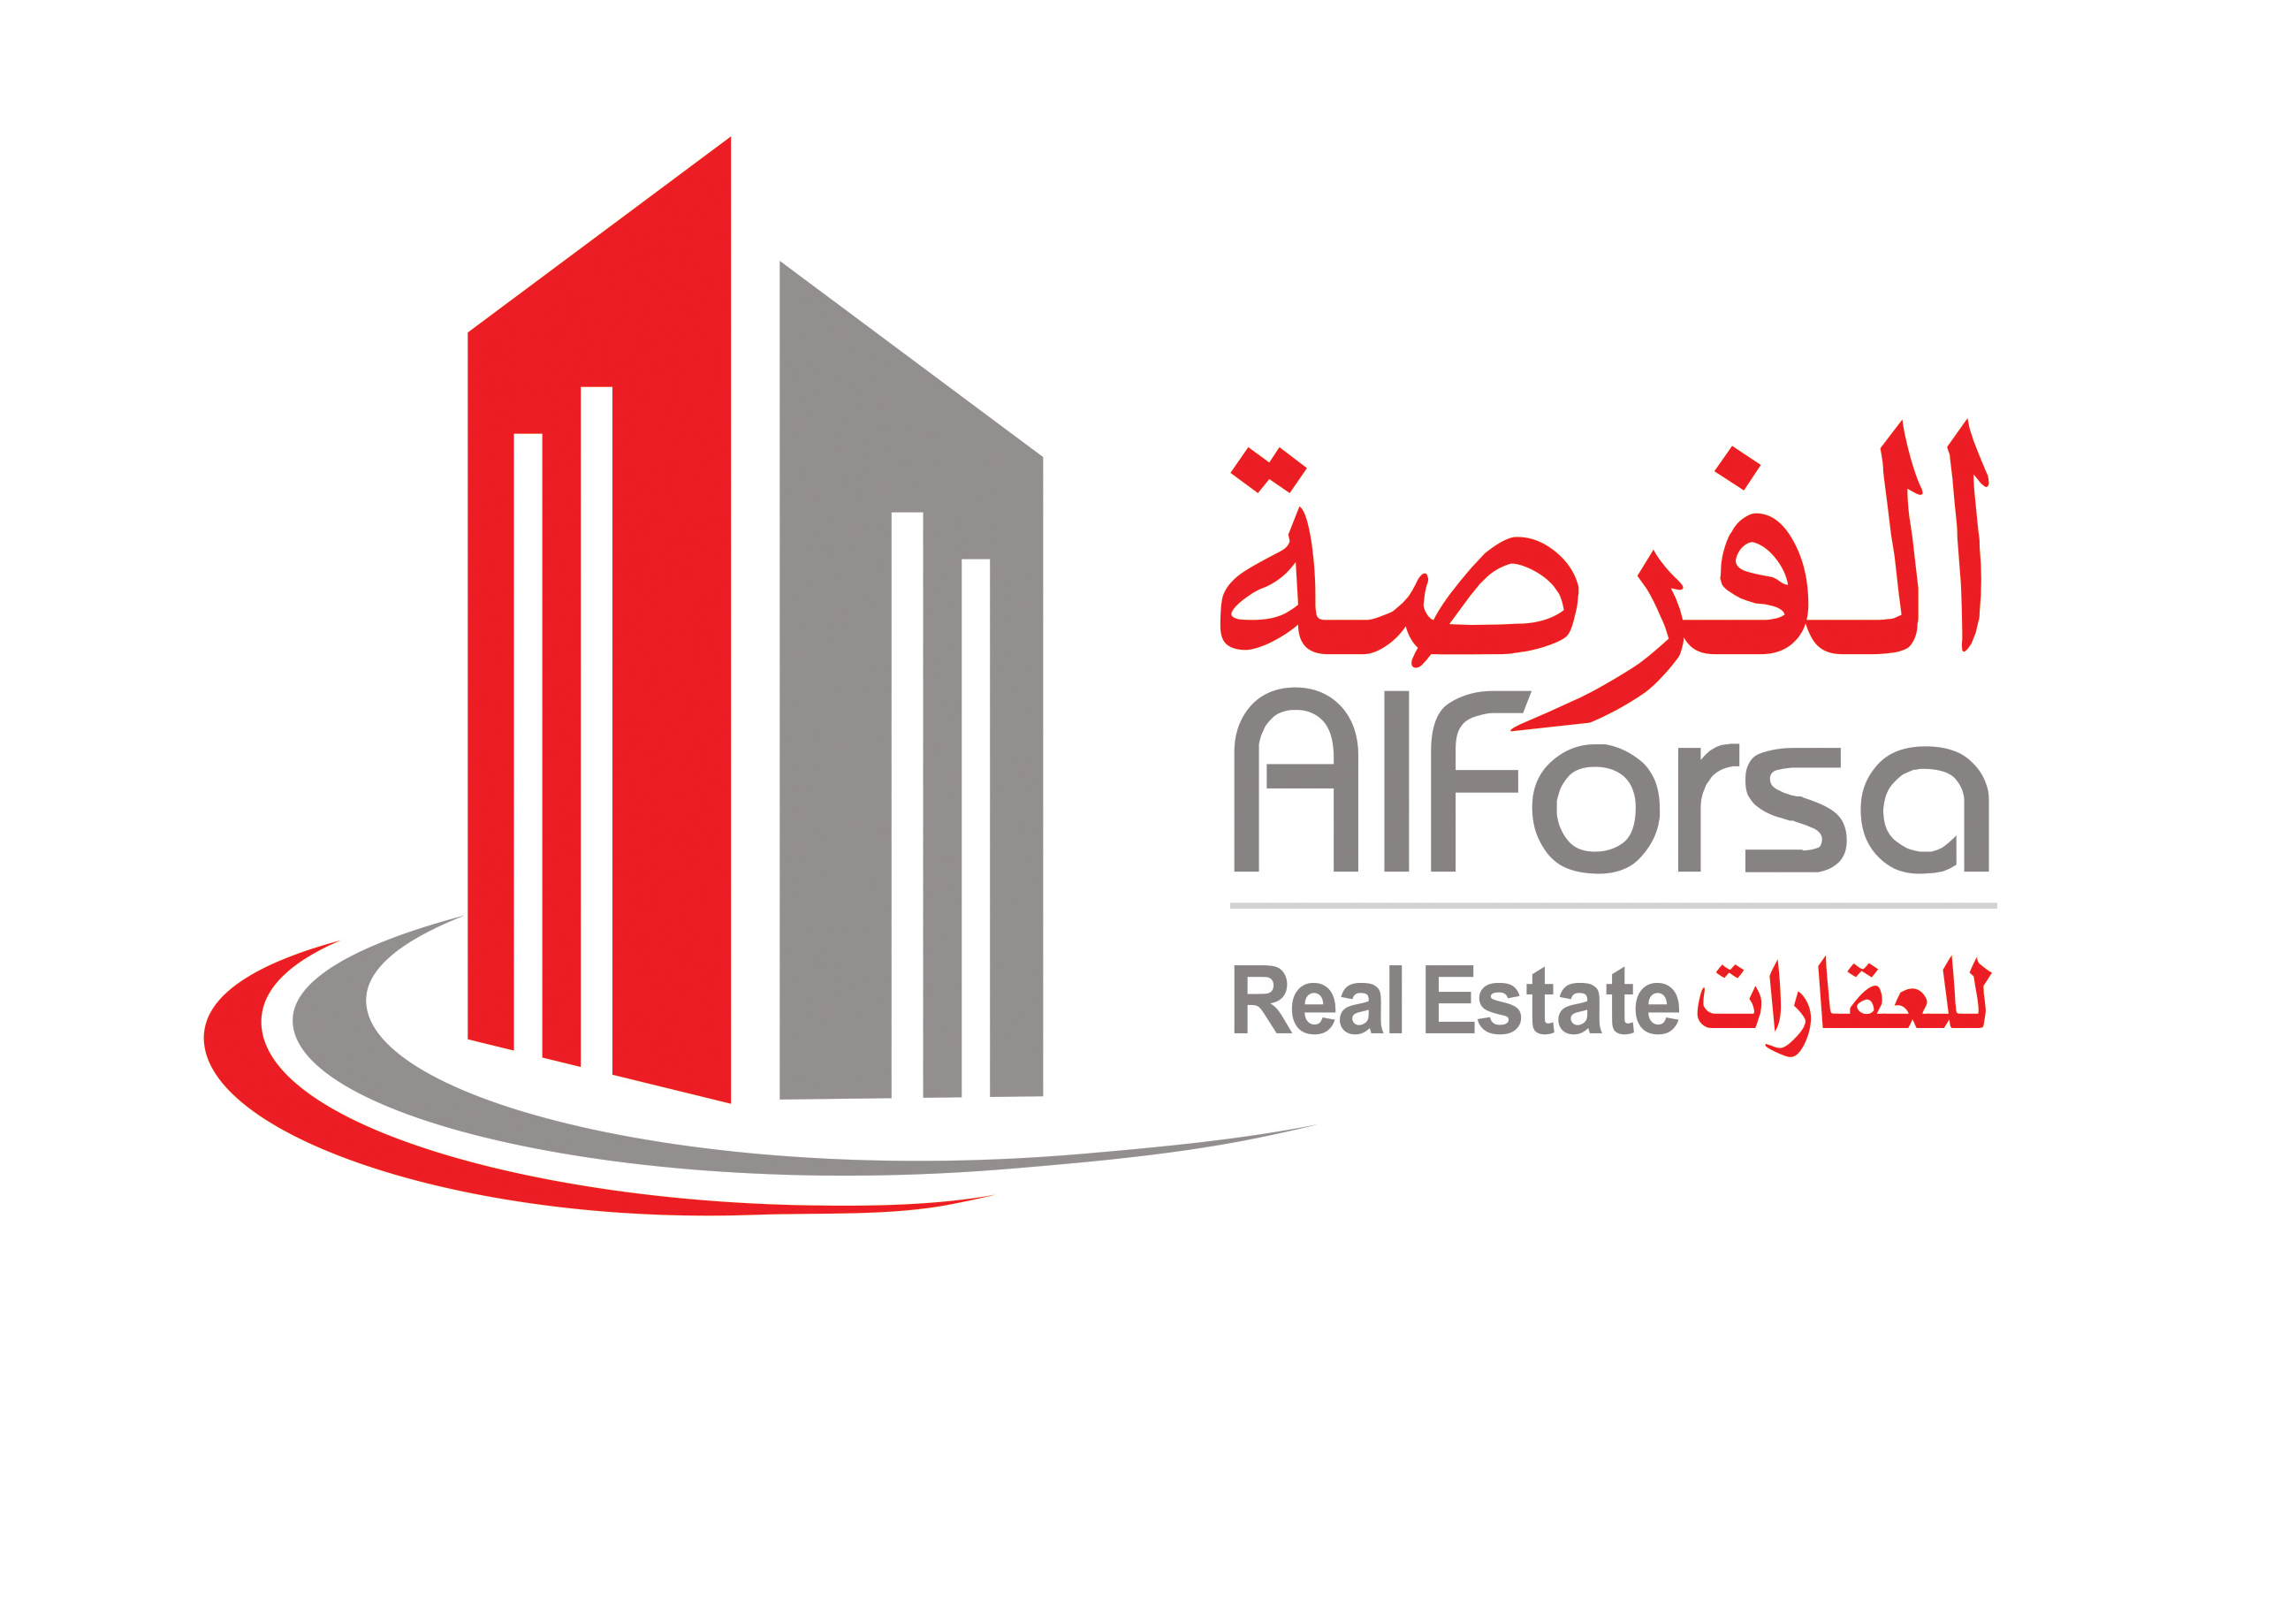 Al Forsa Real Estate